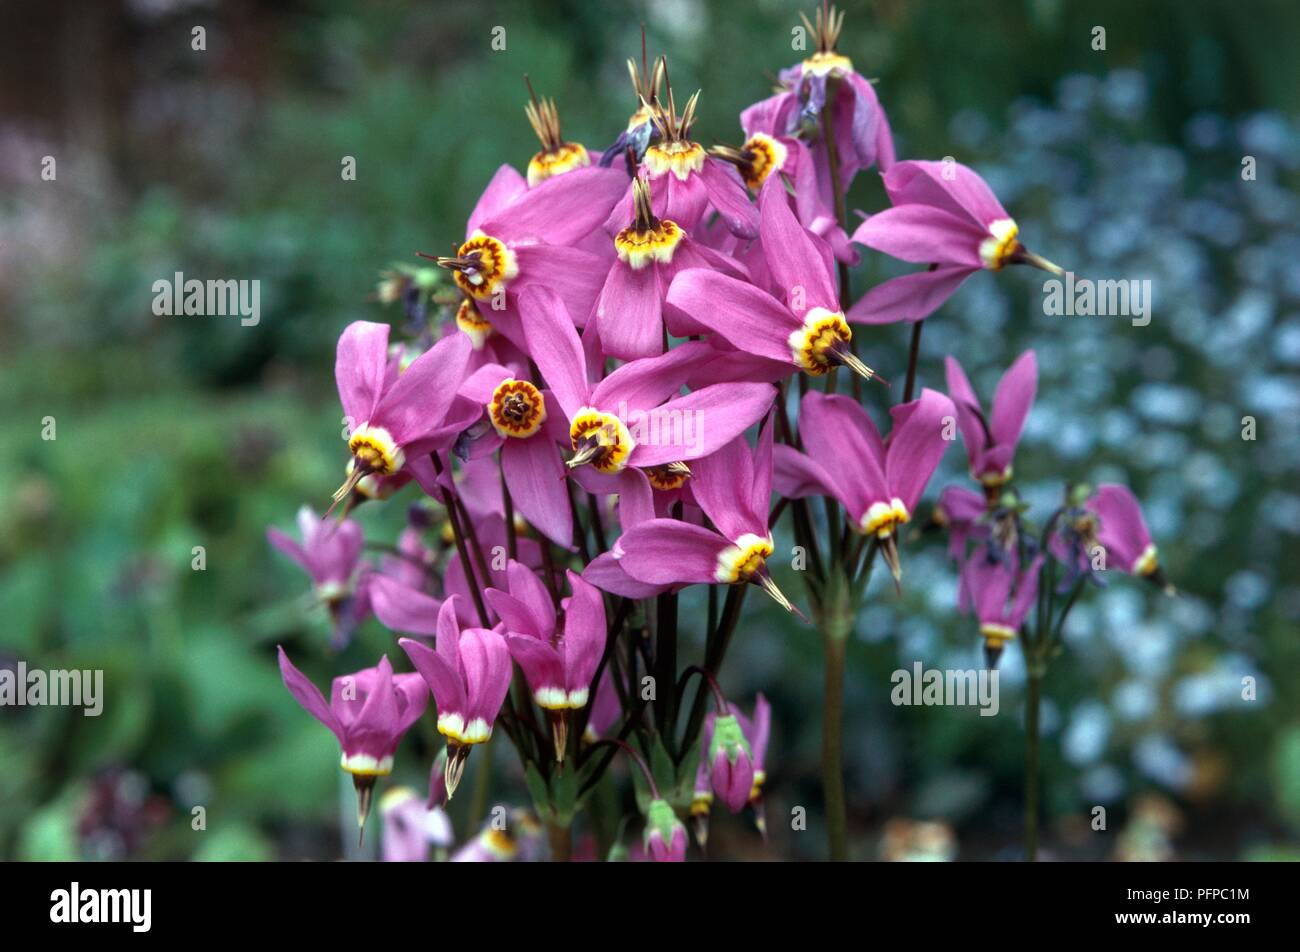 Dodecatheon meadia (Shooting star), purple flowers, close-up - Stock Image